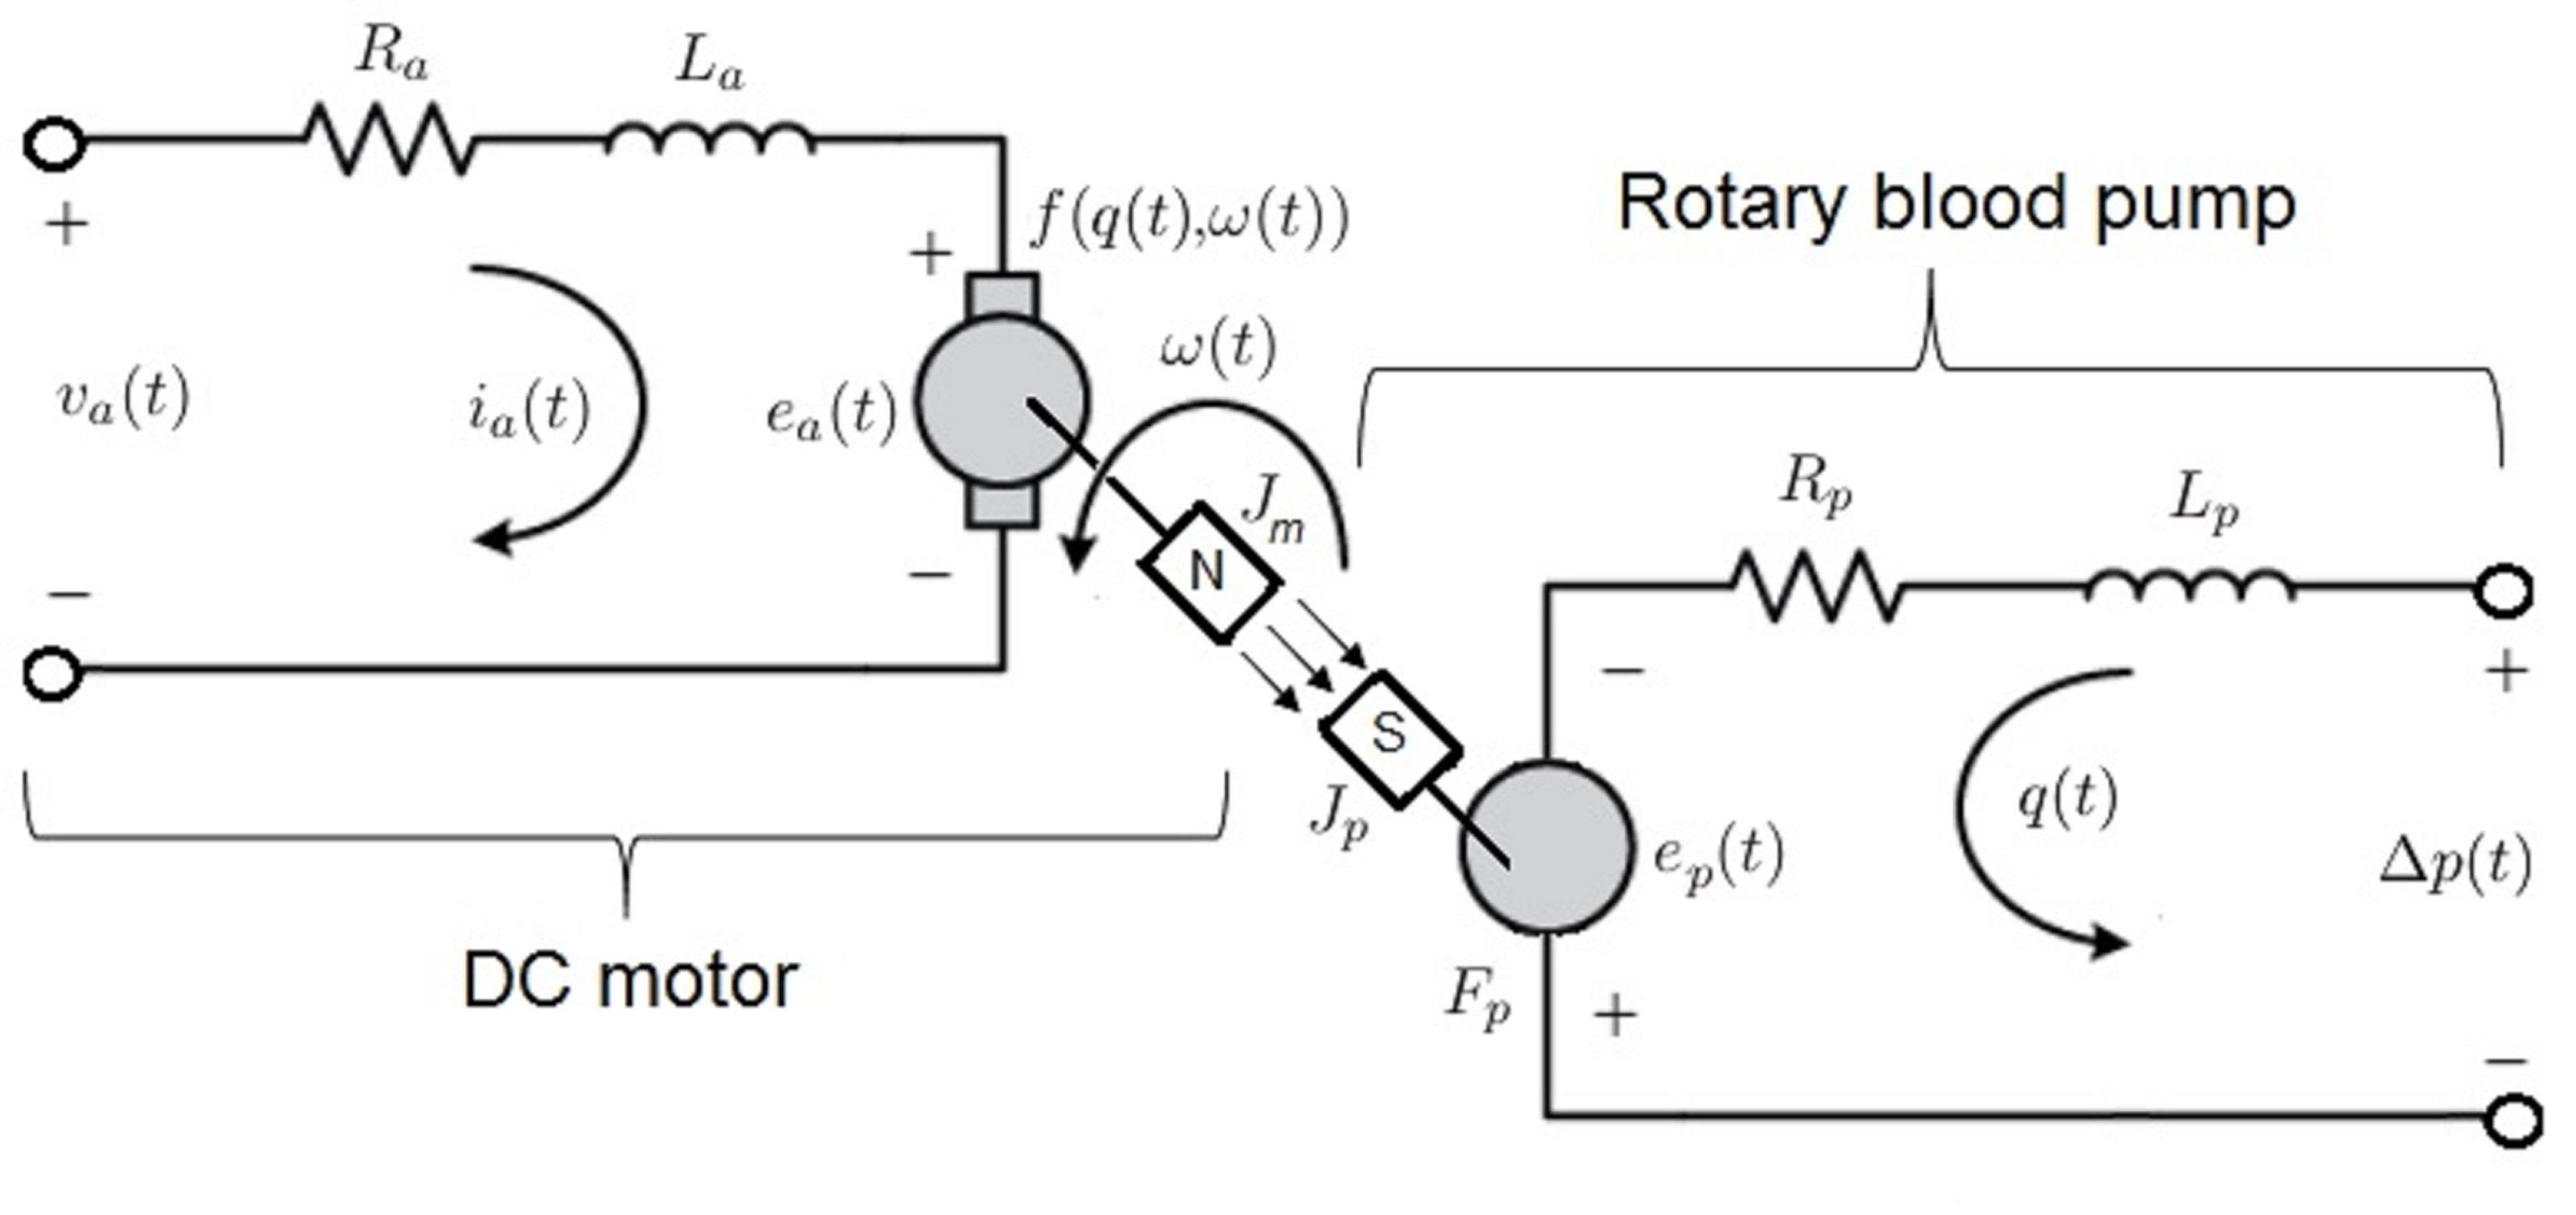 Brushless Dc Motor Diagram Characterization Of A Pediatric Rotary Blood Pump Of Brushless Dc Motor Diagram